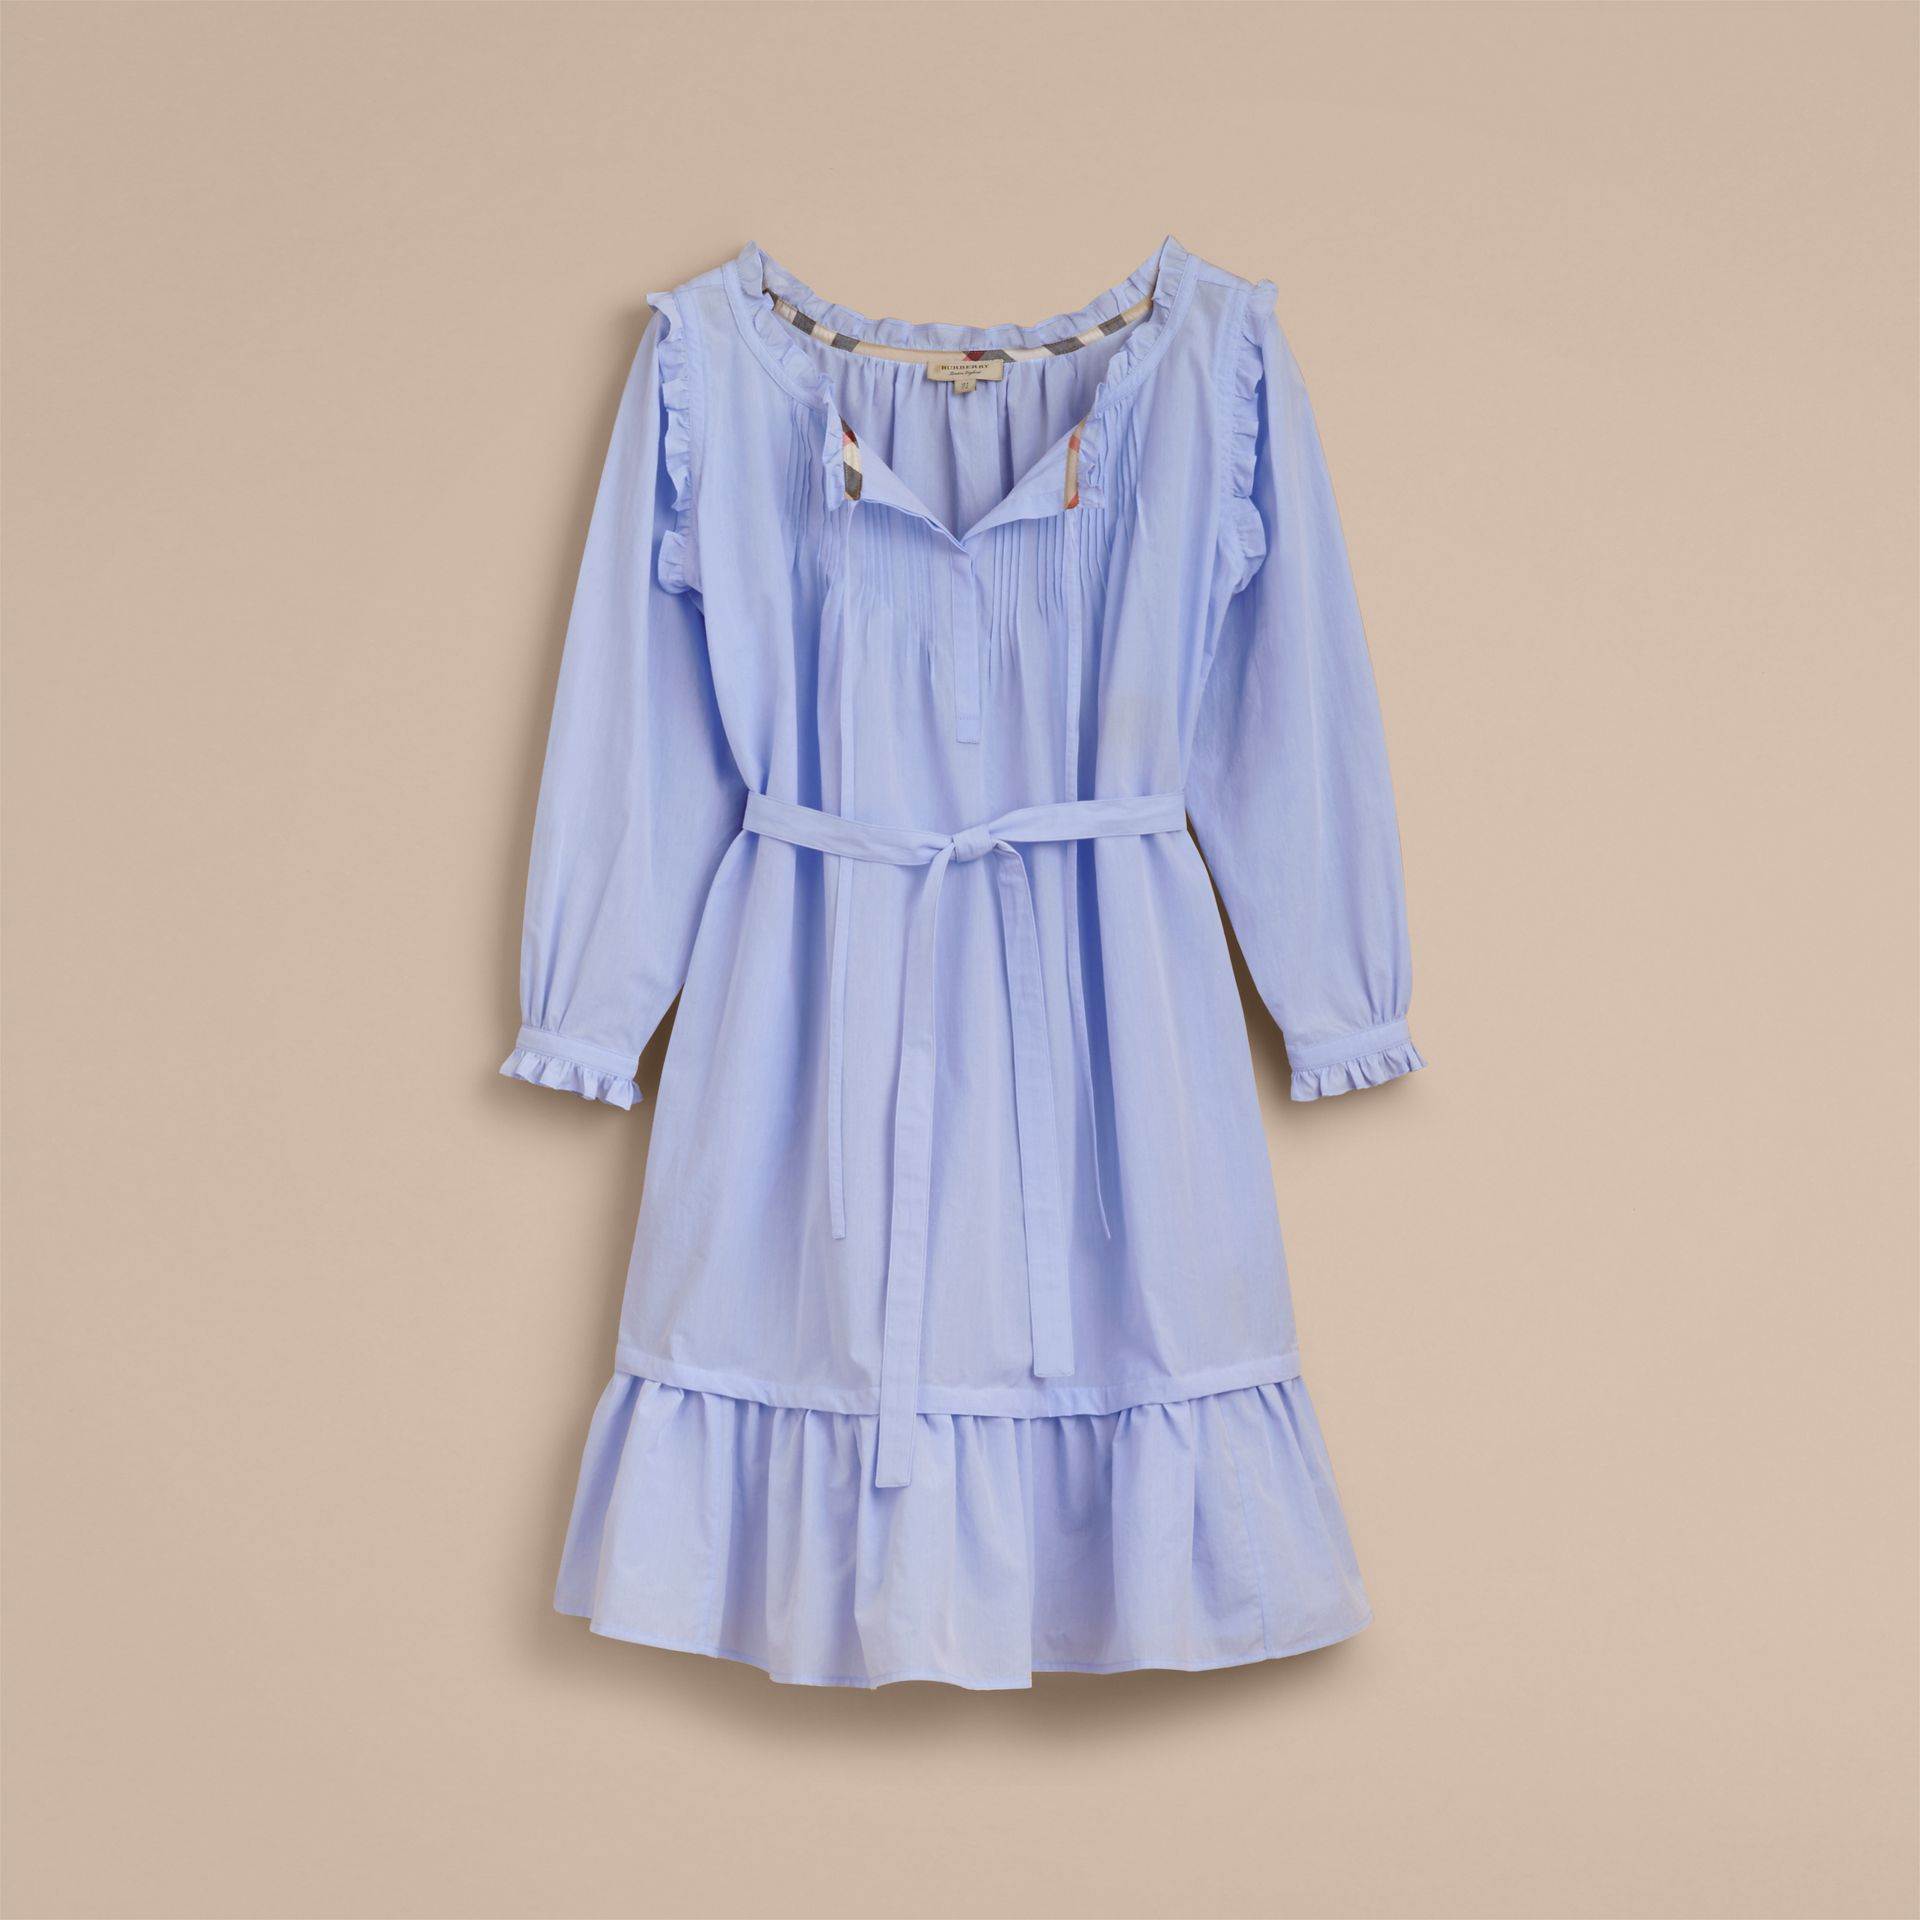 Ruffle and Pintuck Detail Cotton Dress - Women | Burberry Australia - gallery image 4